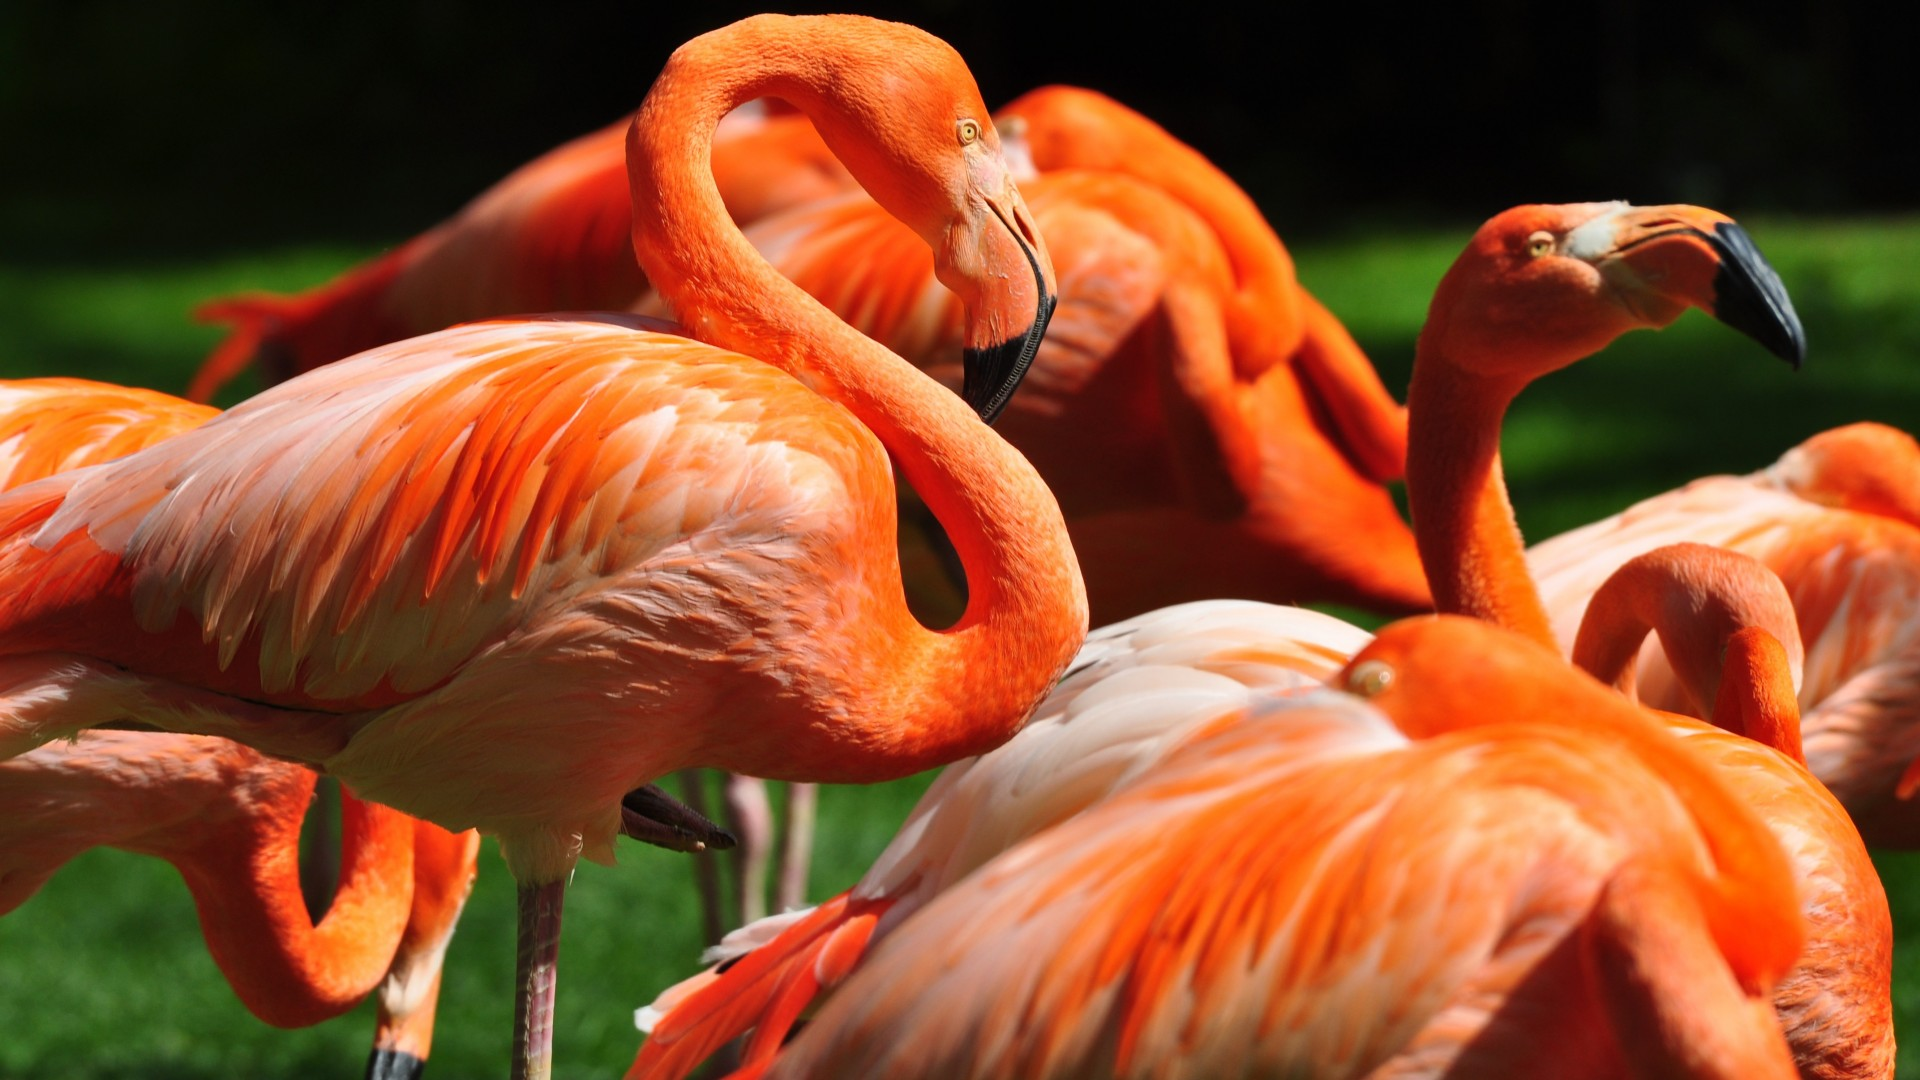 Flamingo, Sun Diego, zoo, bird, red, plumage, tourism, green grass, tourism (horizontal)